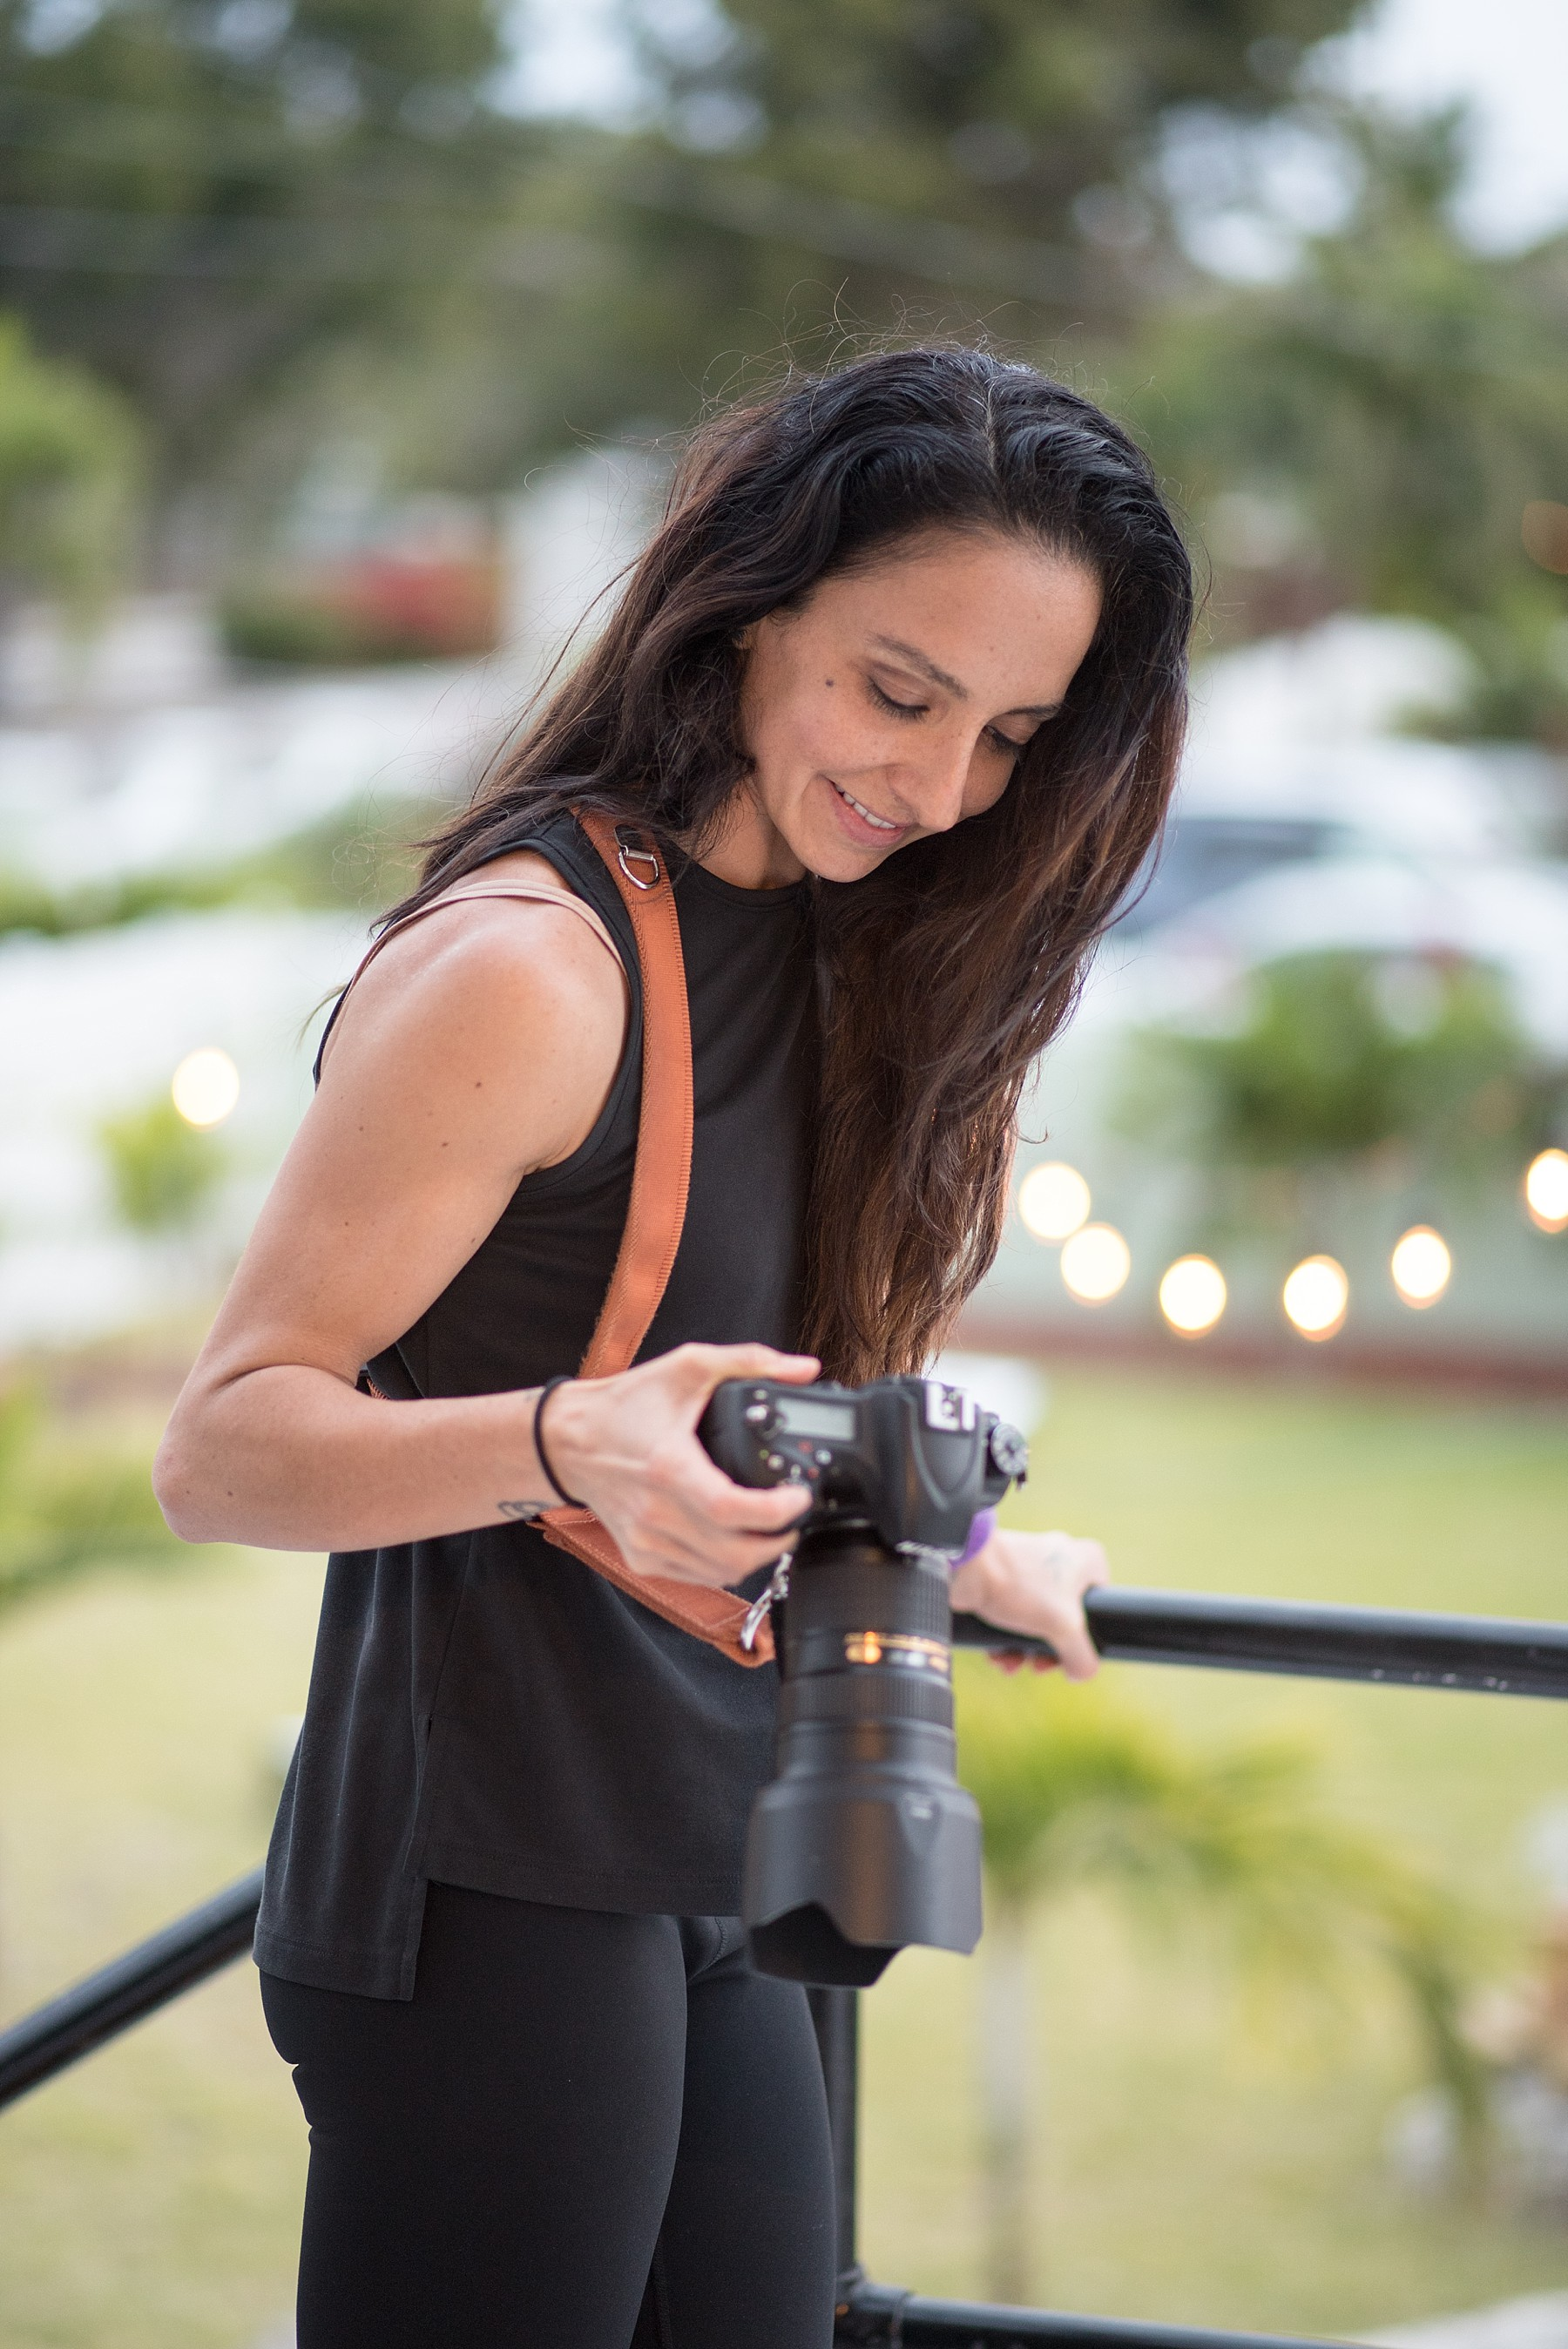 I'M GIGI... & I LOVE WHAT I DO. - (I'M ALSO A BOY MOM, PLANT-BASED VEGAN & ASHTANGA YOGA PRACTITIONER)I am a South Florida wedding photographer with a documentary approach. And, I'm the lucky girl that gets to document the best day of people's lives.My photography is different.It's not the same old fluff you are used to seeing. I create bold and vibrant images that capture the essence of who you are, both as individuals and as a couple, through the eyes of the loved ones surrounding you. I do this by building relationships. By being vulnerable. By being honest. By being human. By being me.Photography is my calling, my profession, and the thing that will undoubtedly drive me insane someday.